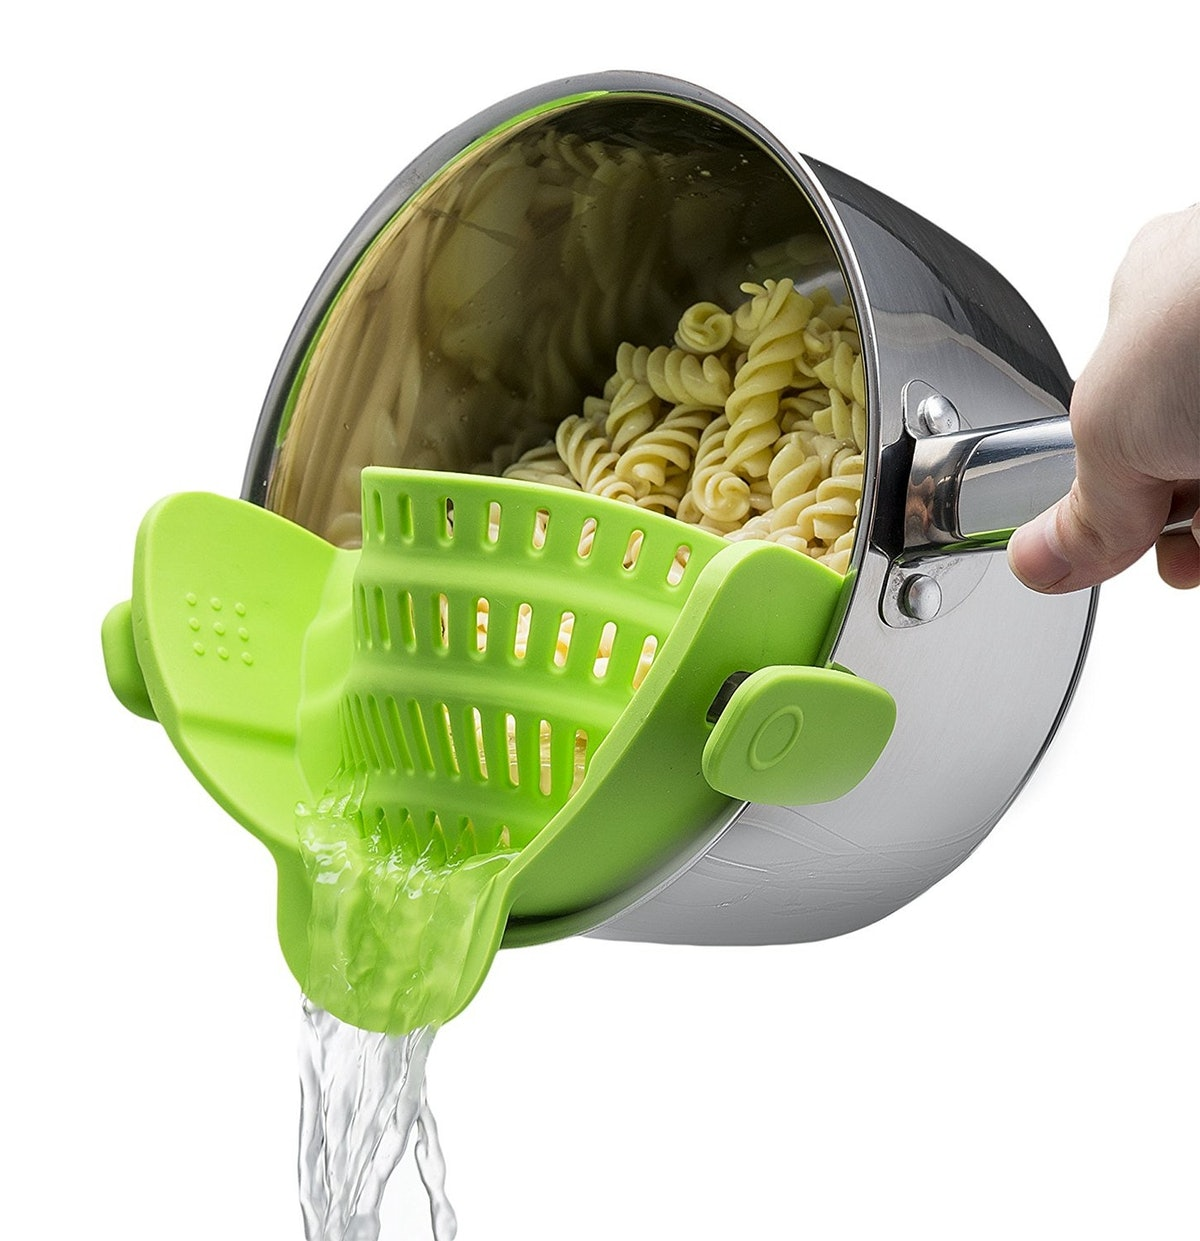 Official Mac Belk Clip-on Silicone Strainer